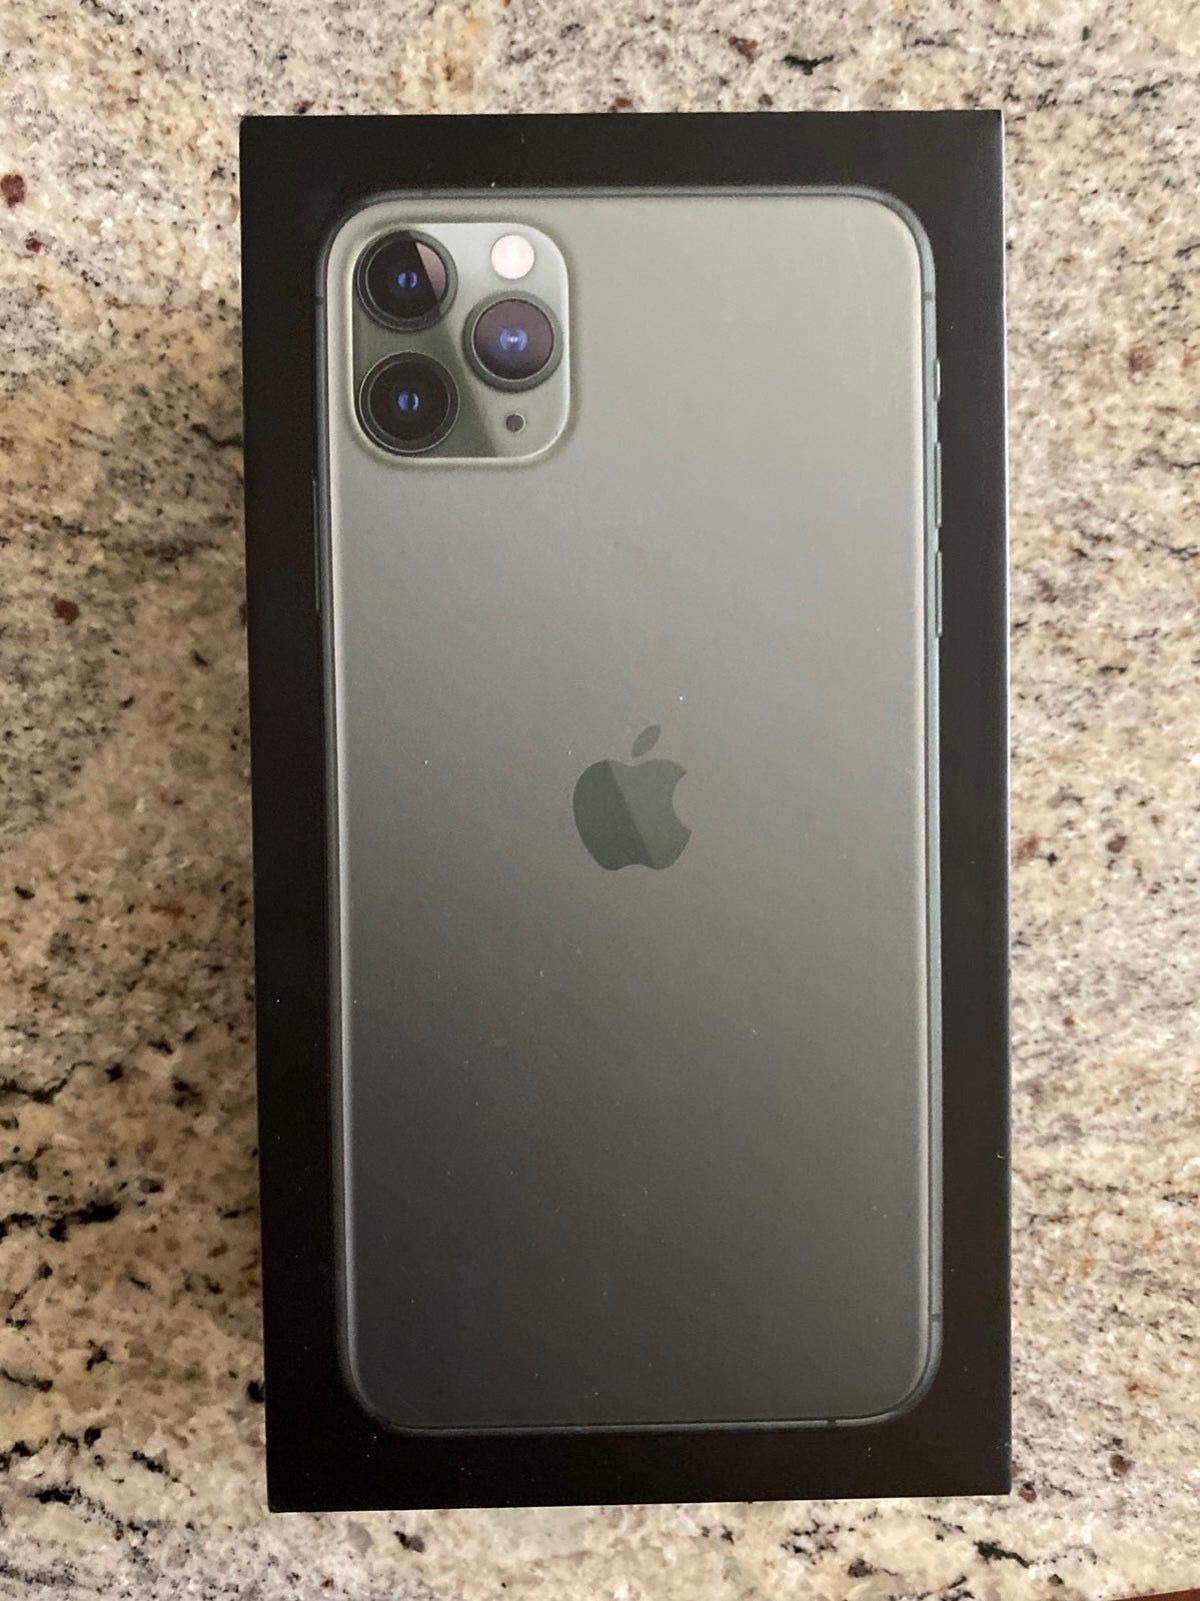 Iphone 11 Pro Max 256gb Box Only In 2020 Iphone Iphone 11 Samsung Products